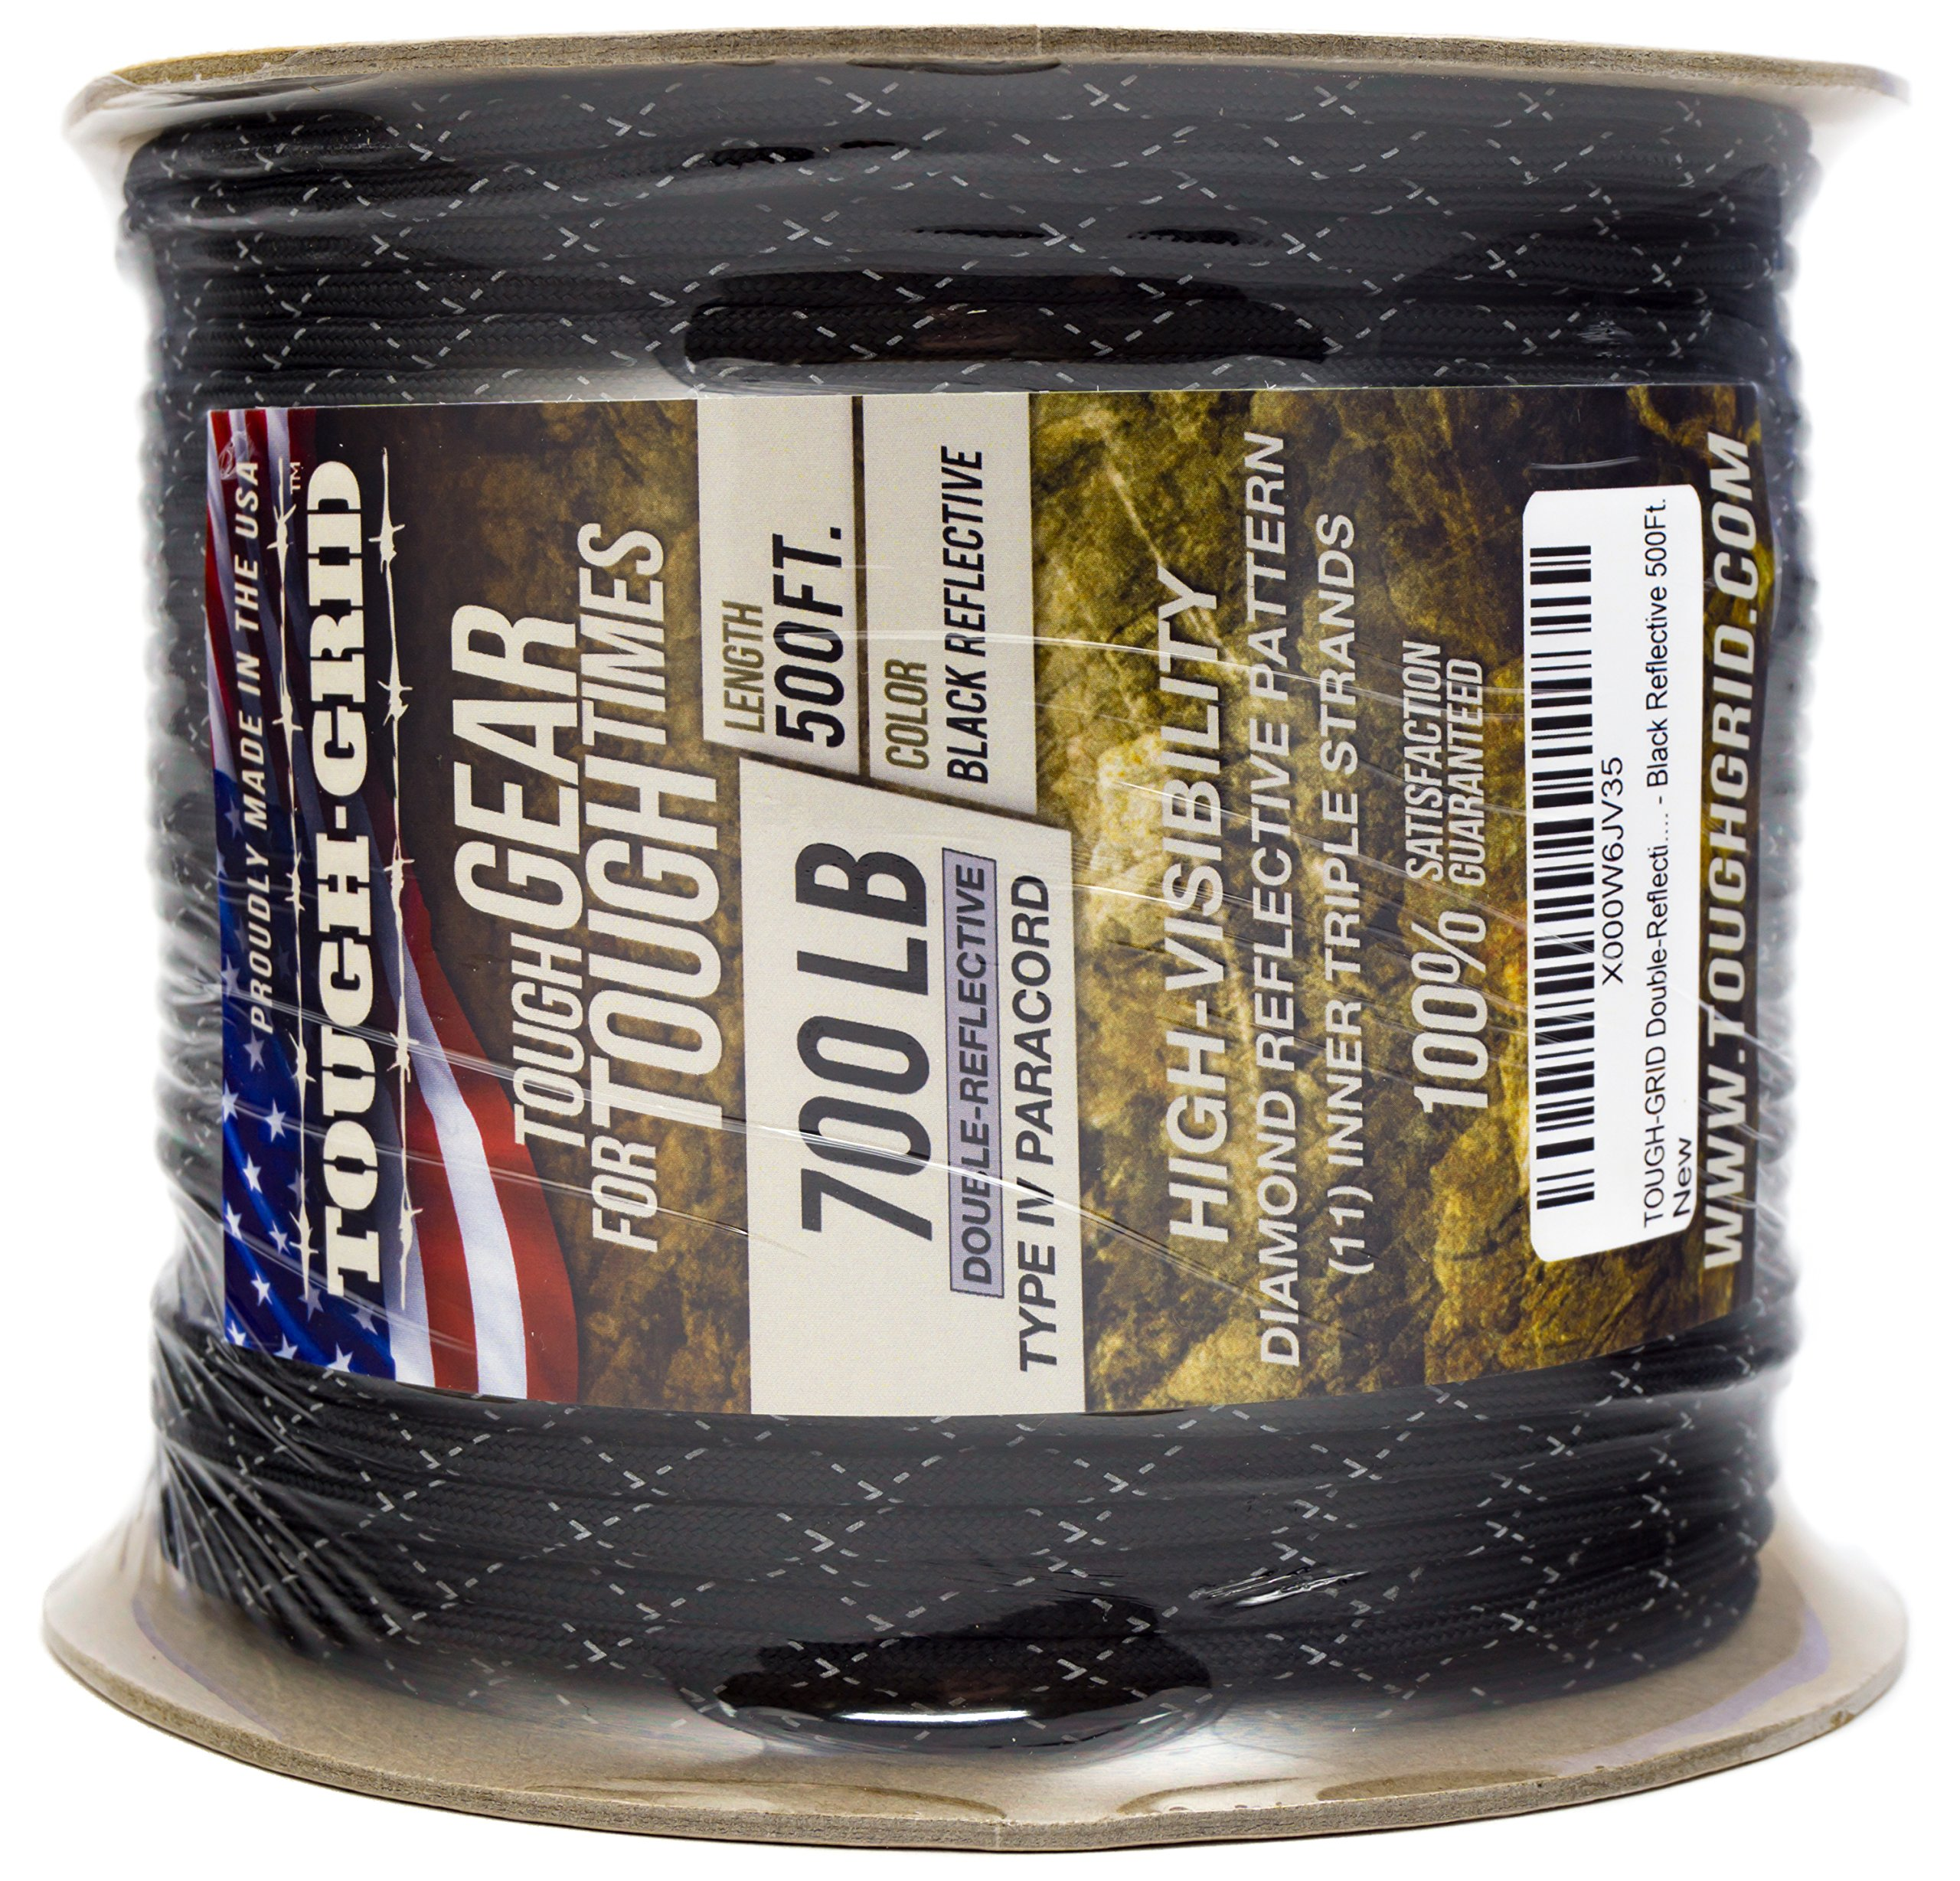 TOUGH-GRID New 700lb Double-Reflective Paracord/Parachute Cord - 2 Vibrant Retro-Reflective Strands for The Ultimate High-Visibility Cord - 100% Nylon - Made in USA. - 100Ft. Black Reflective by TOUGH-GRID (Image #6)